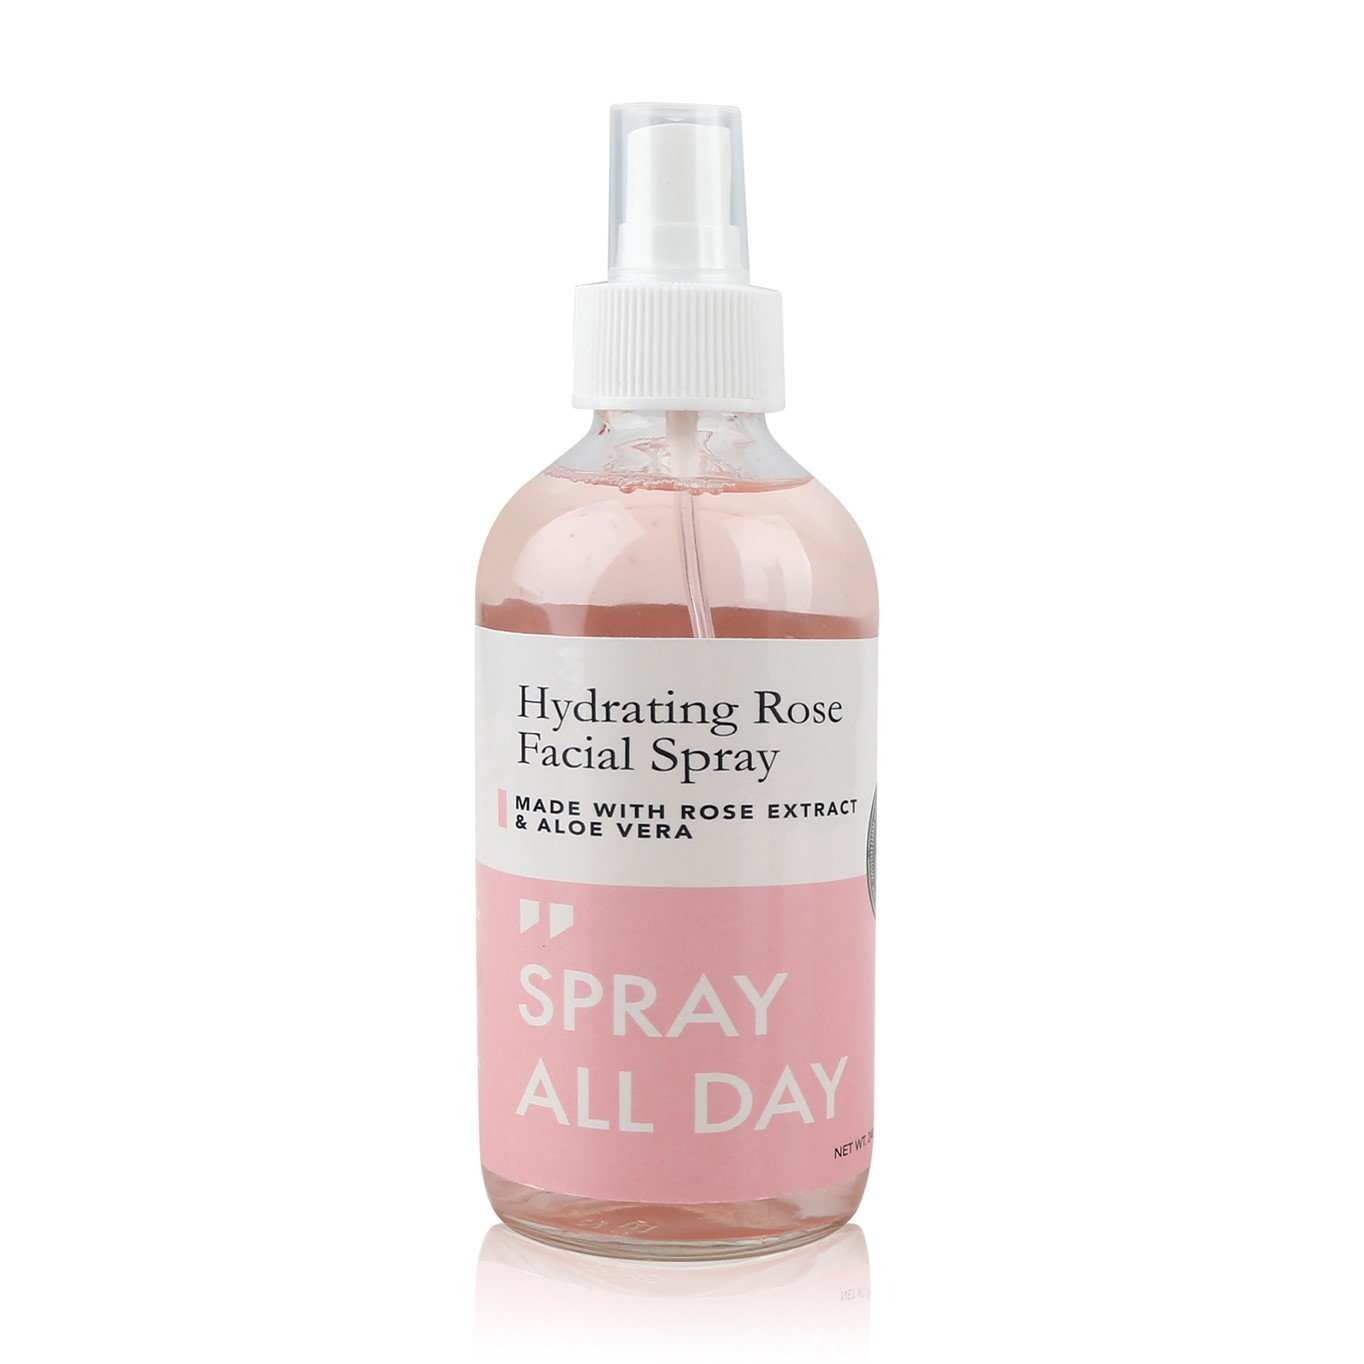 Rose Facial Mist Spray (240ml) - Hydrating & Moisturizing - Setting Spray to Freshen Skin & Makeup - Glass Bottle Grace & Stella